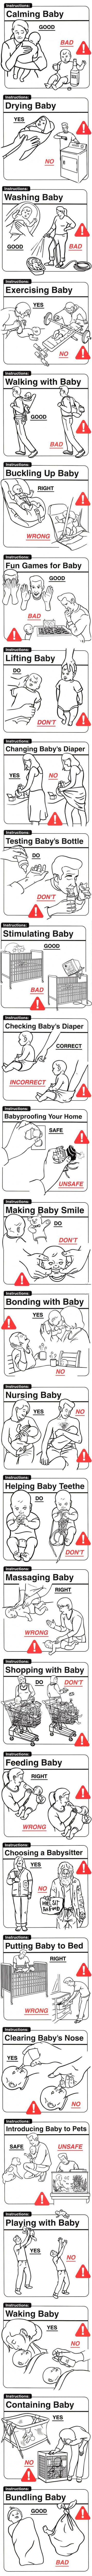 baby treatment